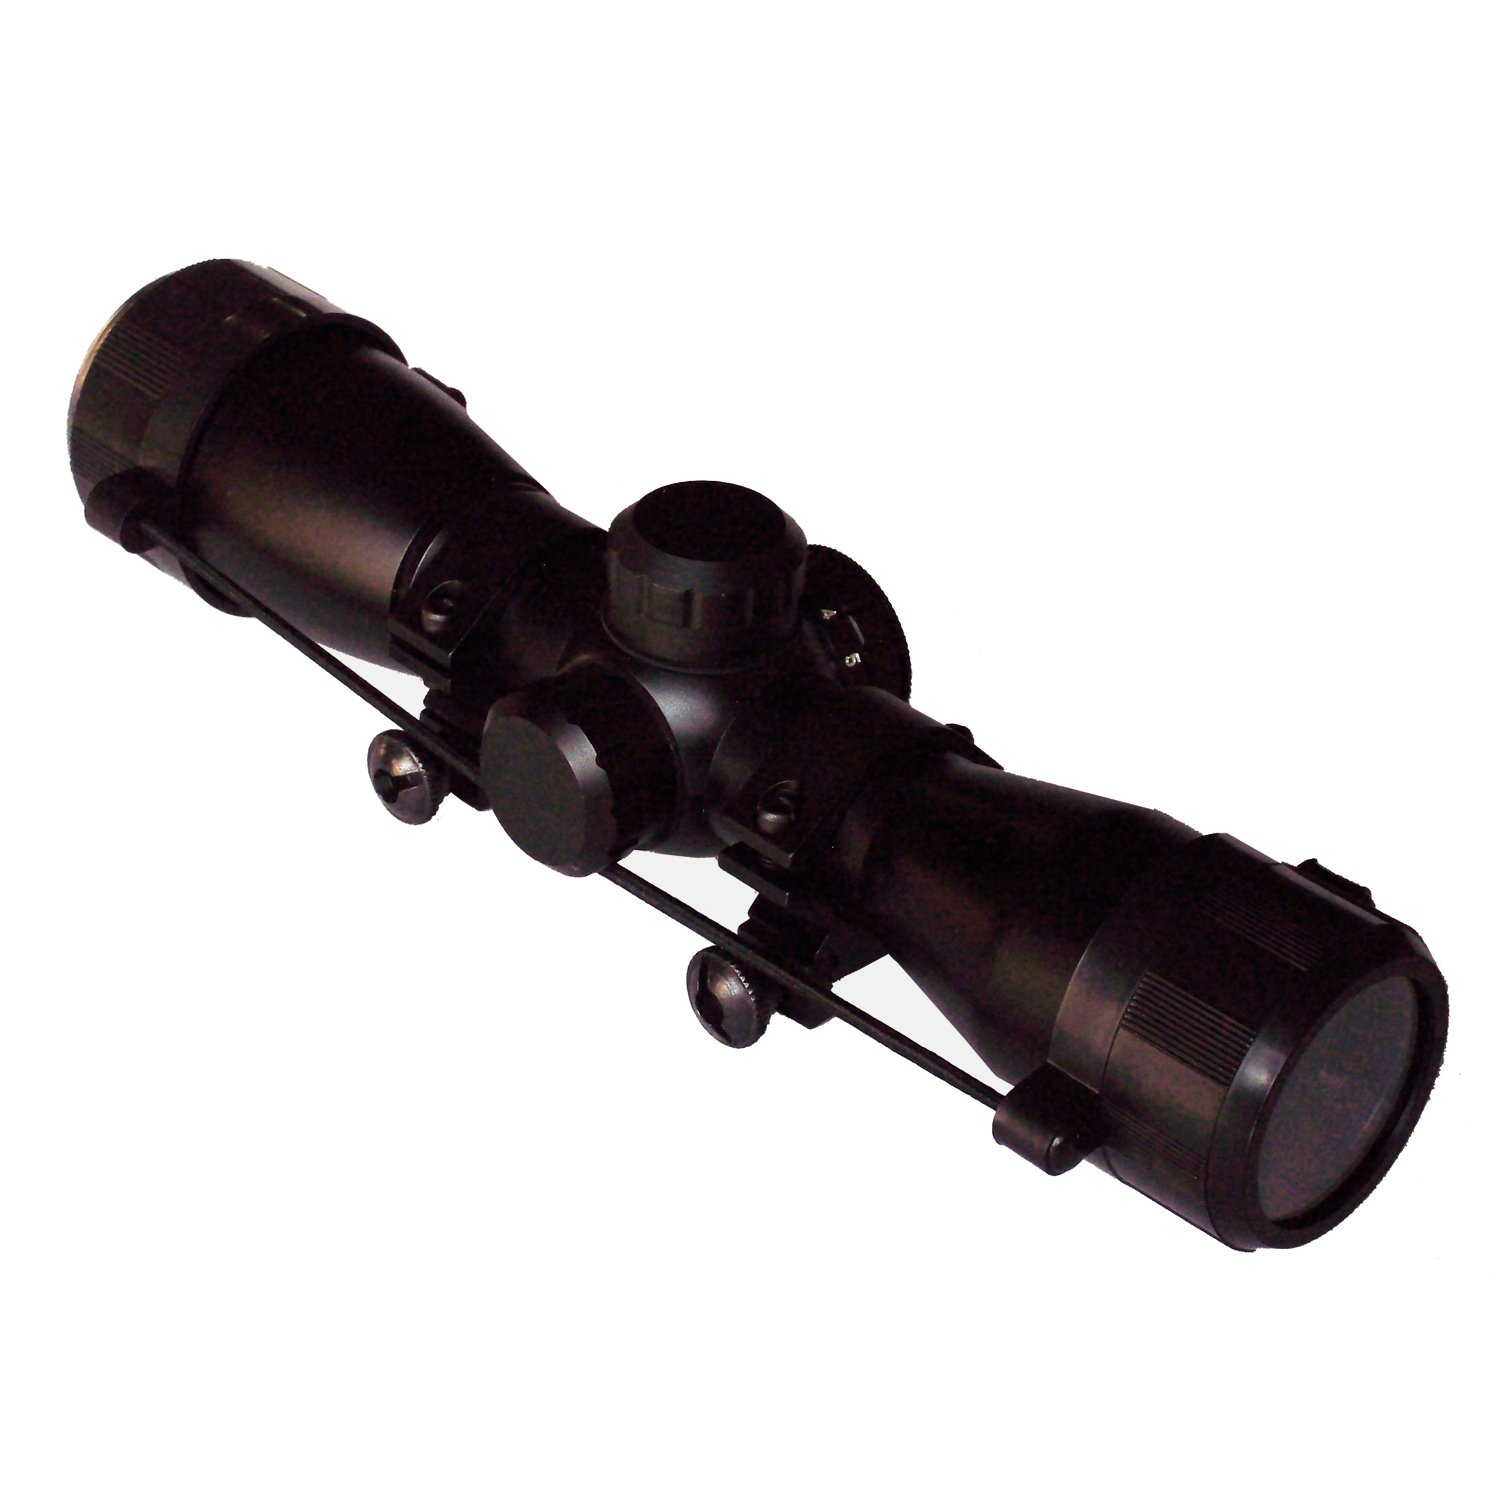 SA Sports 4x32 Illuminated Multi Reticle Crossbow Scope 550 by SA Sports (Image #1)